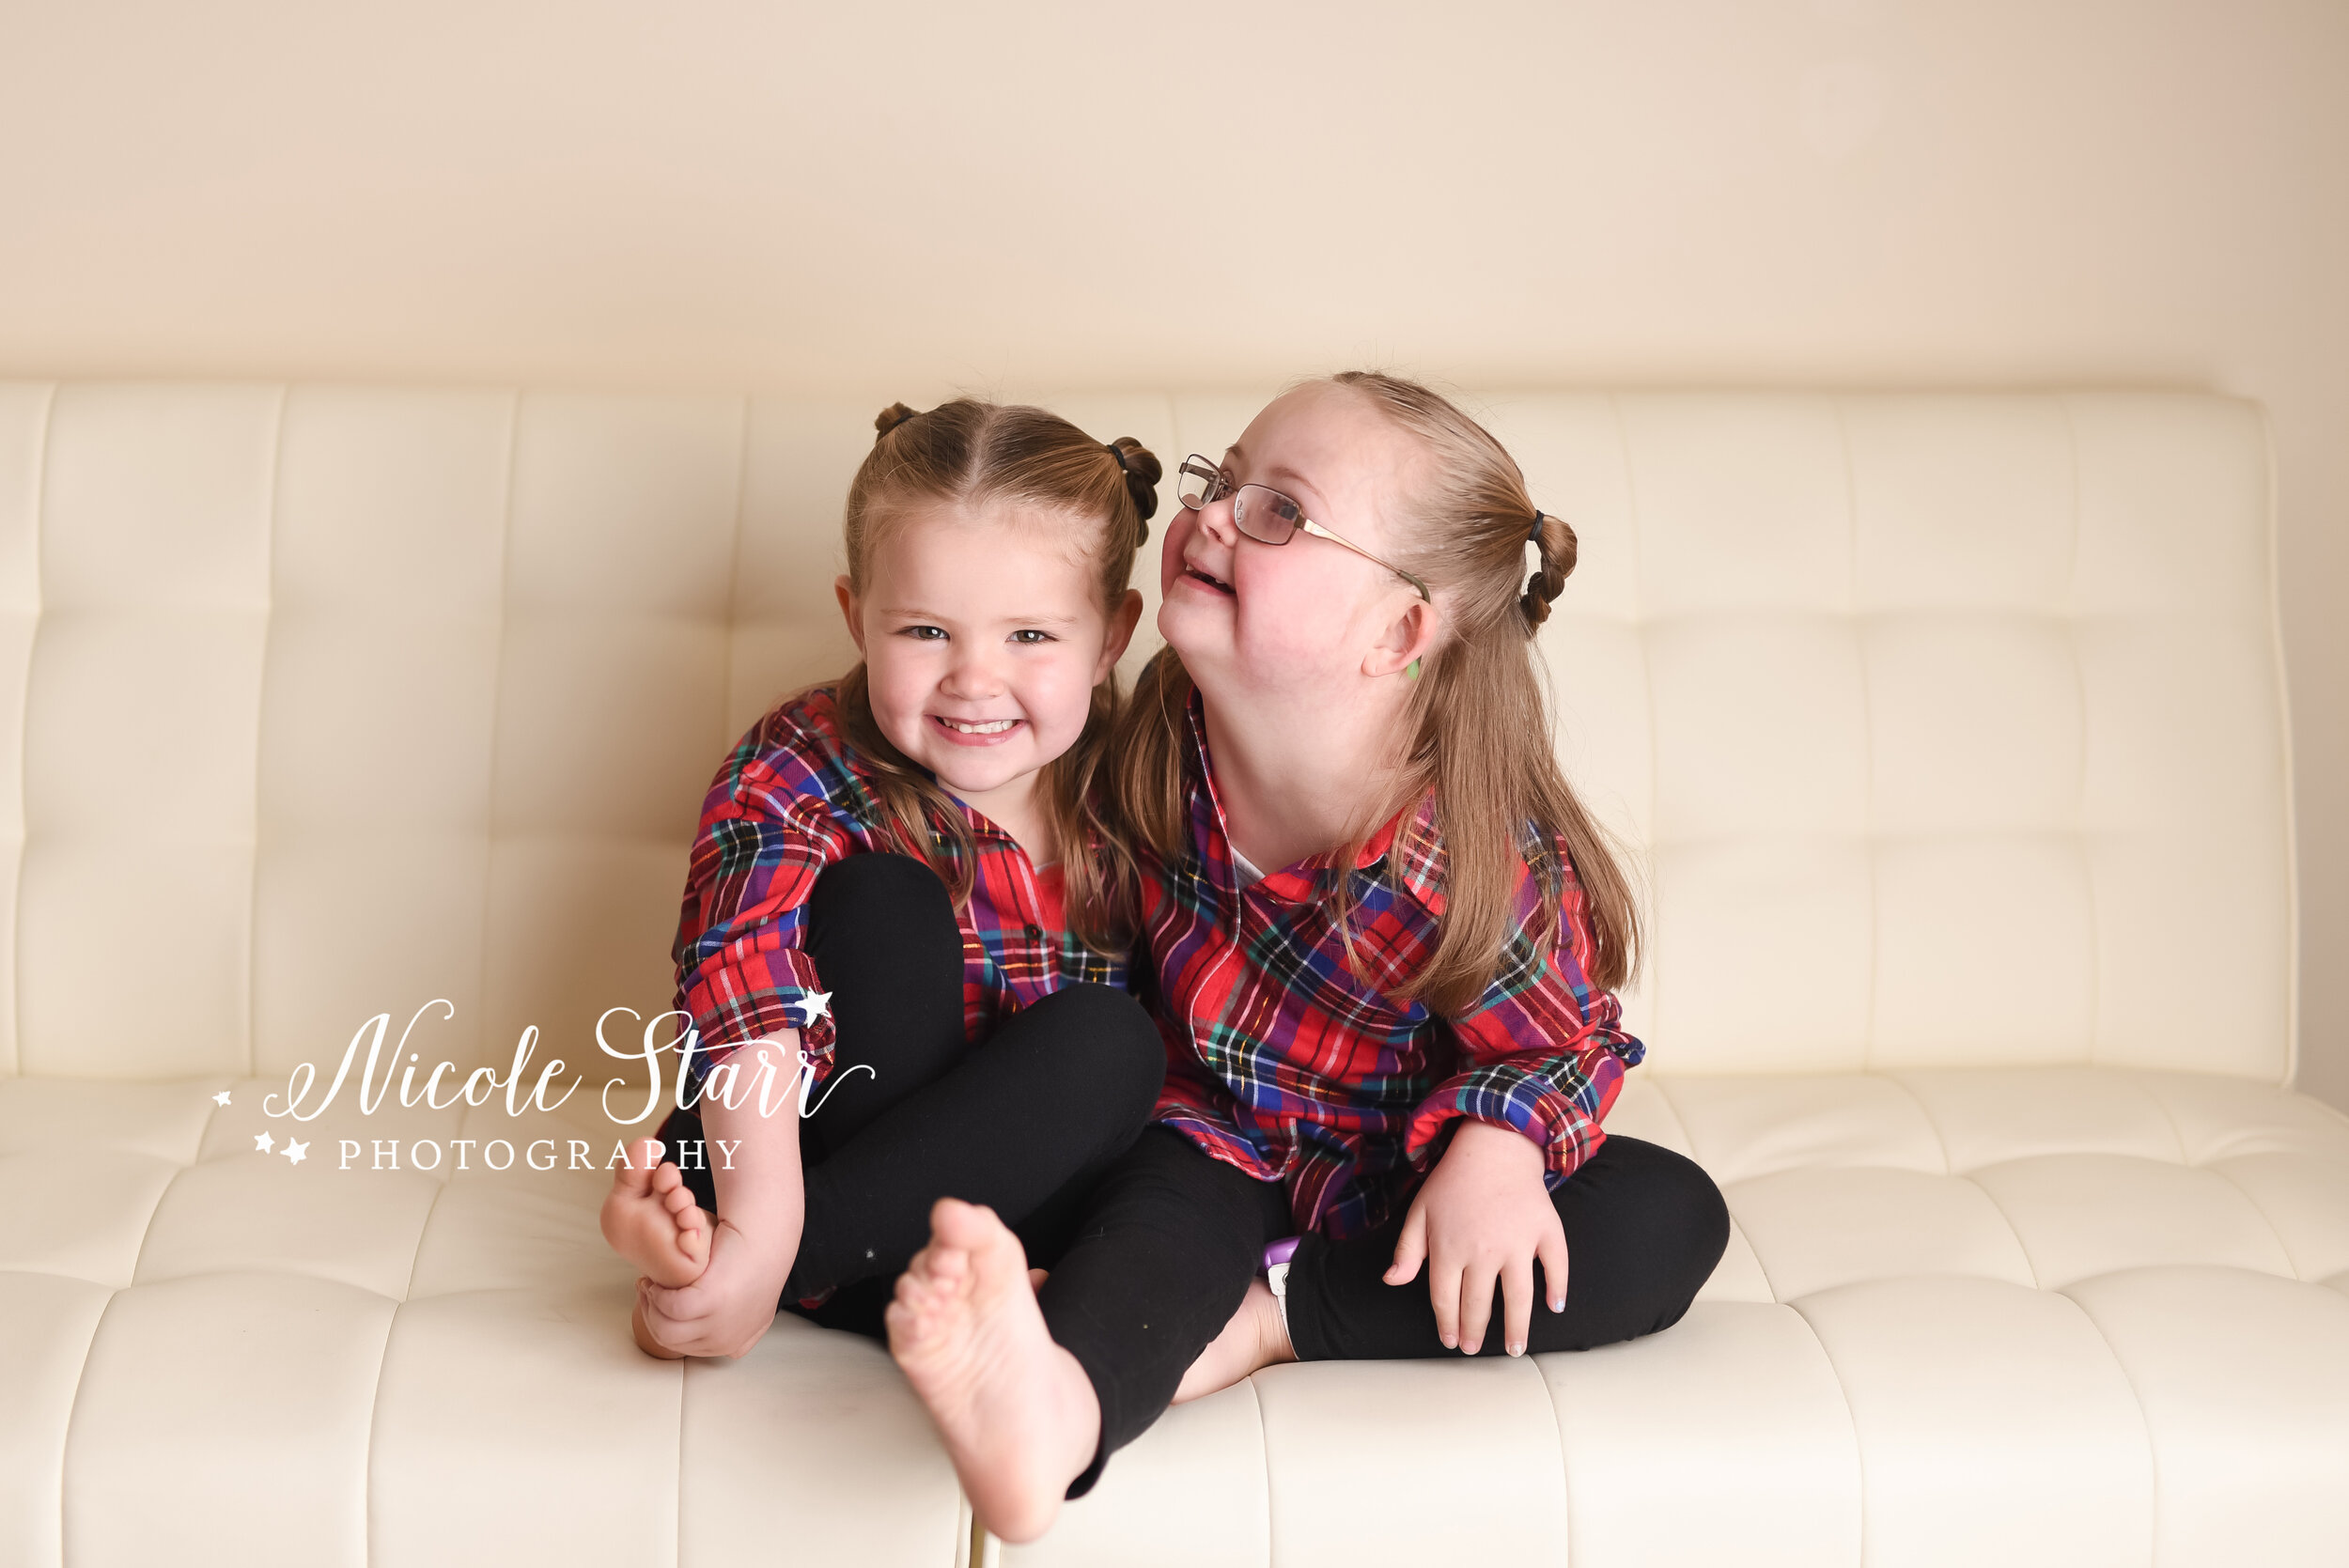 Nicole Starr Photography | Saratoga Springs NY and Boston MA children's photographer, National Down Syndrome Awareness Month, NDSAM, Down syndrome advocacy, special needs photographer, Down syndrome awareness